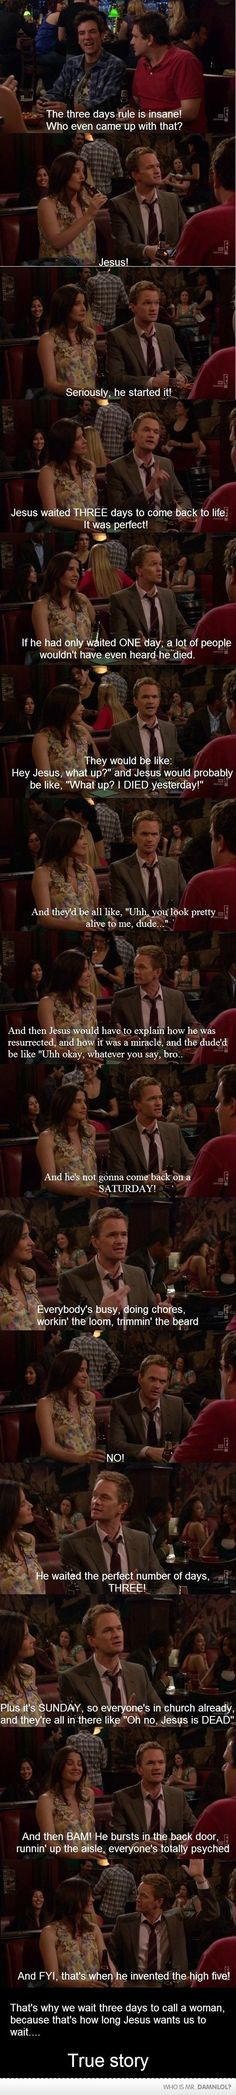 The 3 days rule. #HIMYM